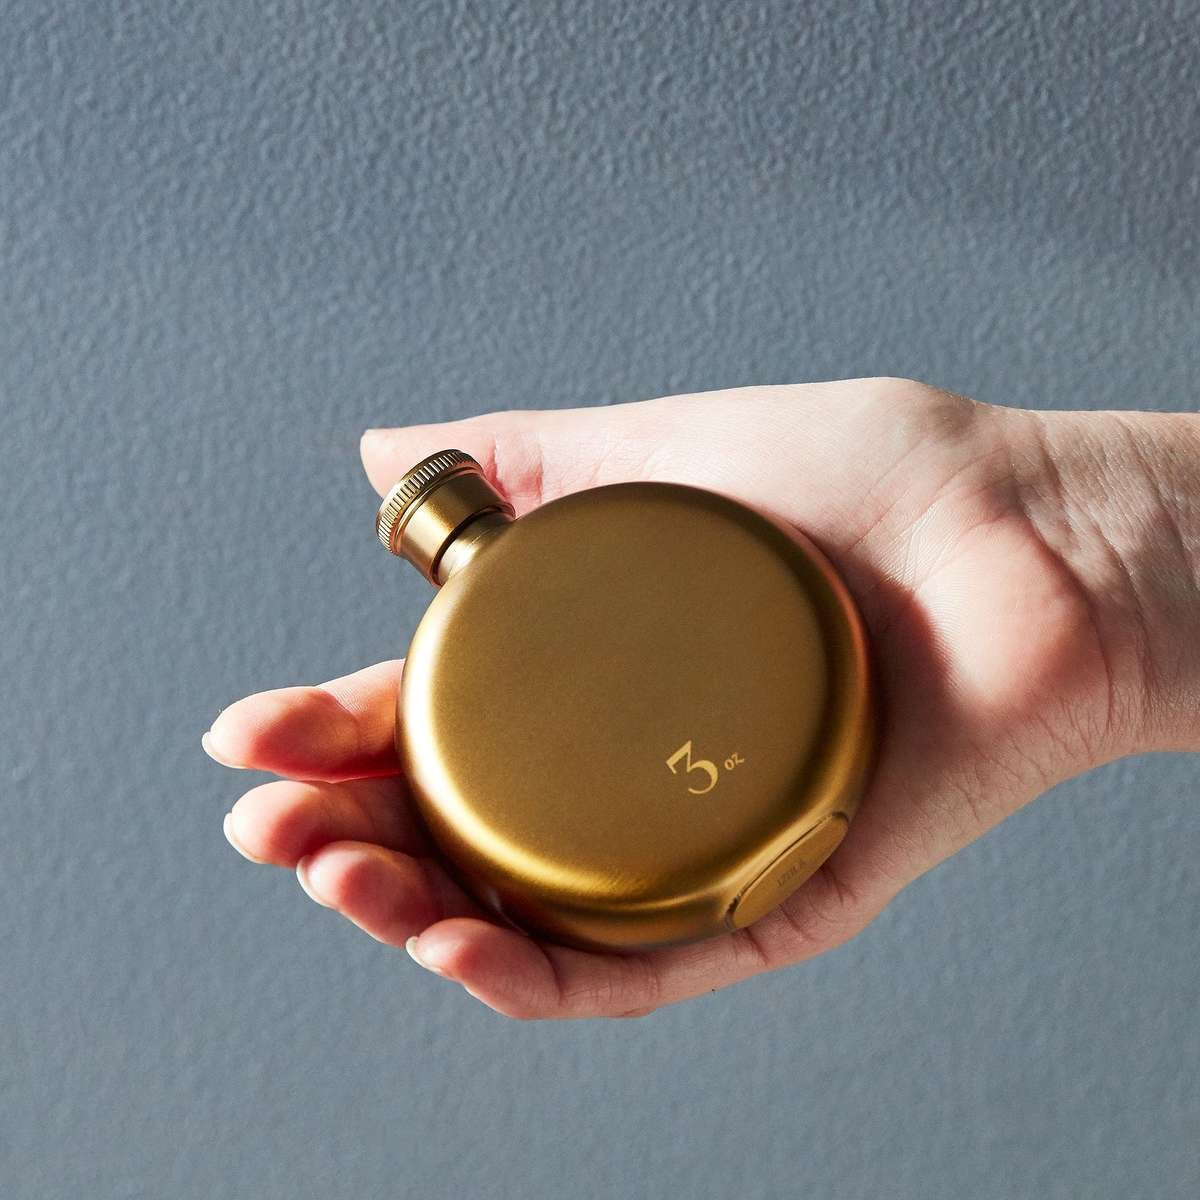 3 oz gold flask